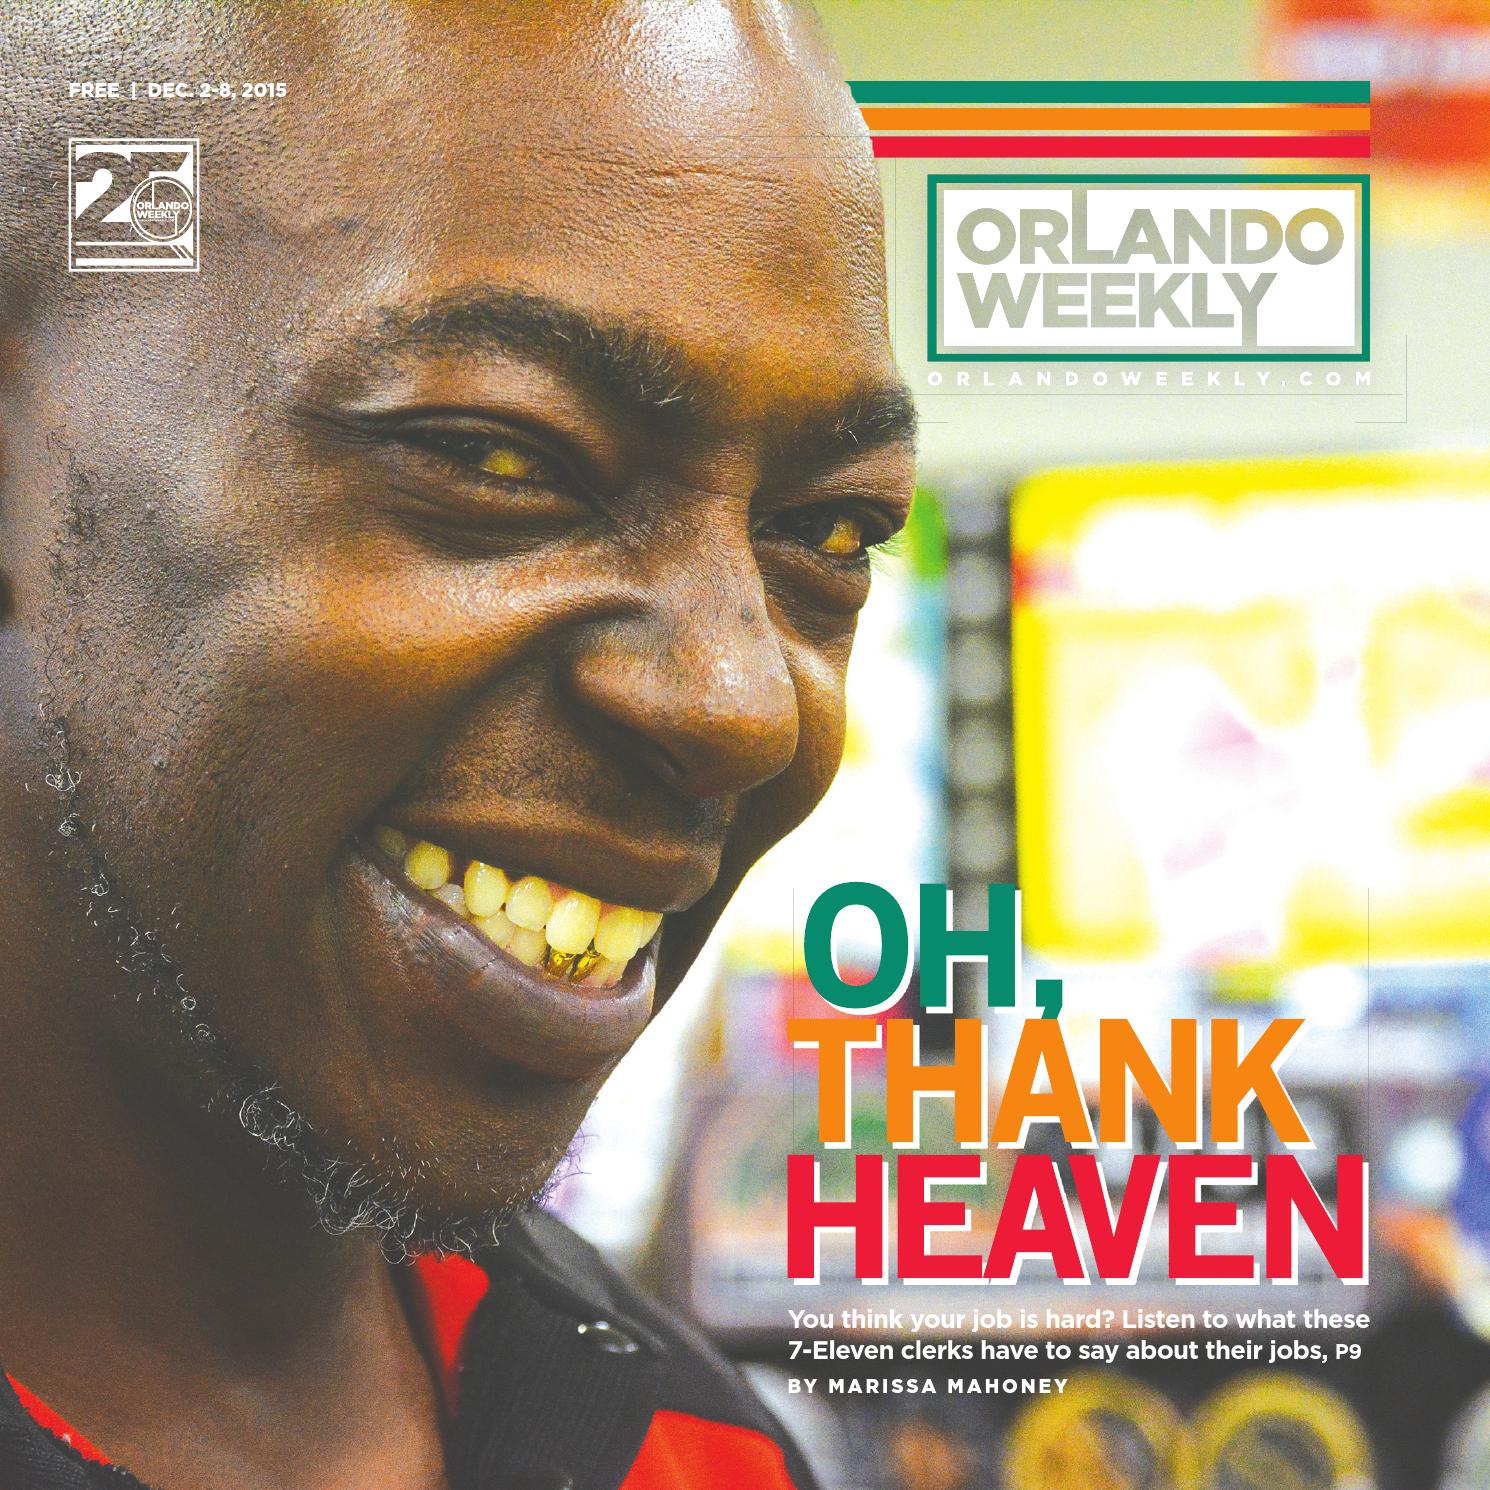 orlando weekly december 02 2015 by euclid media group issuu